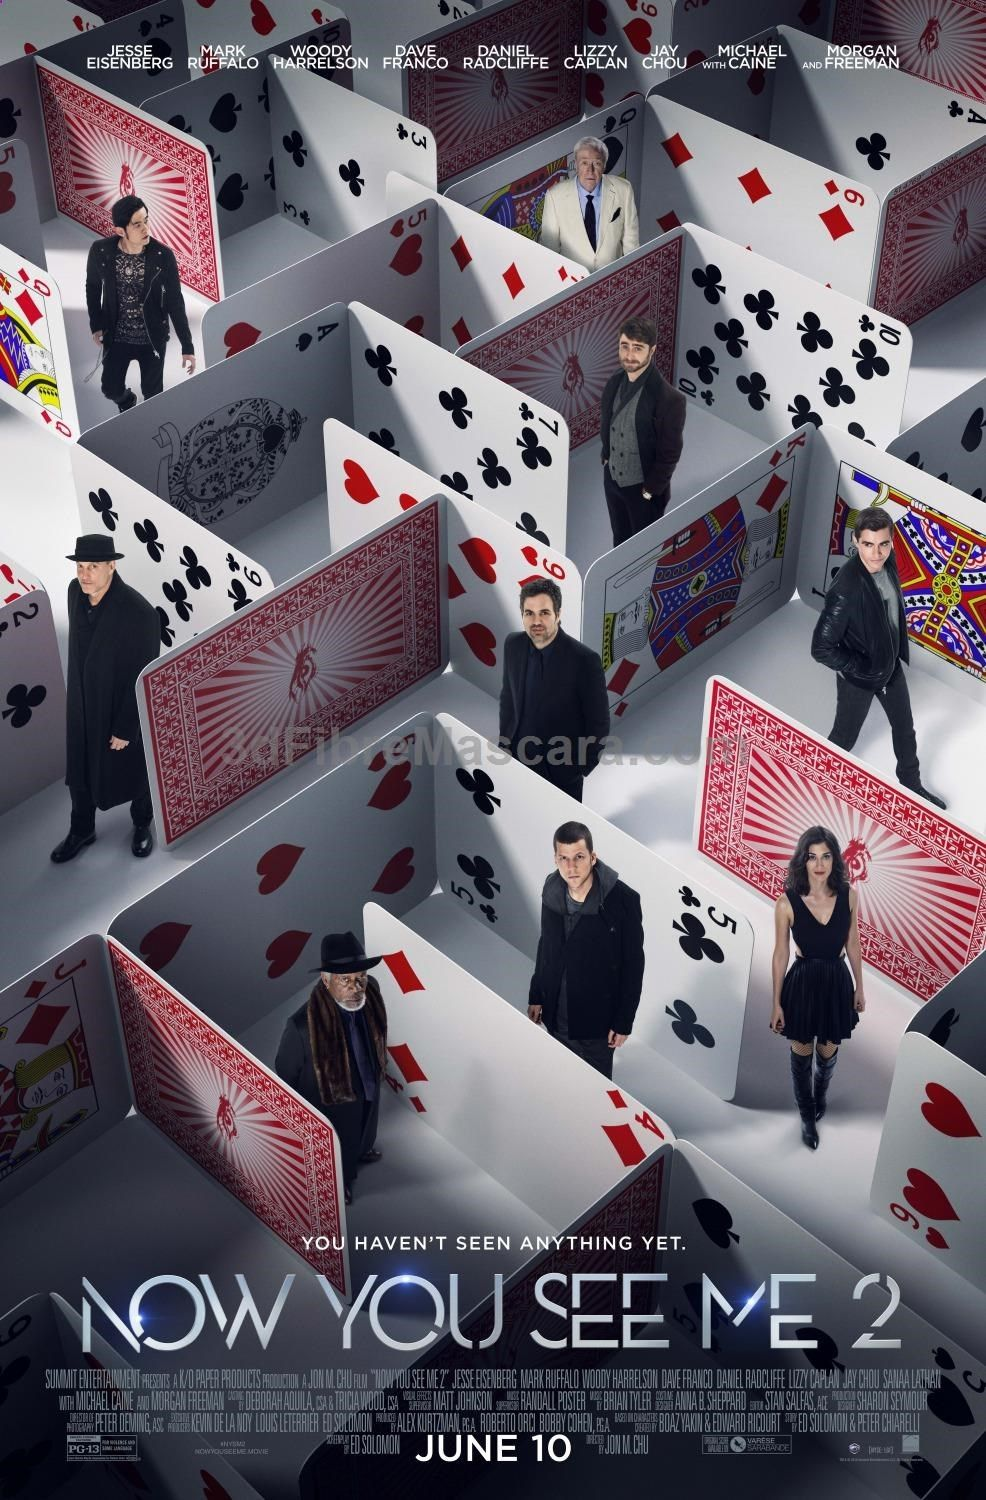 Watch a new trailer for Now You See Me 2 | Live for Films #movie #movies #newreleases #cinema #media #films #filmreviews #moviereviews #television #boxsets #dvds #tv #tvshows #tvseries #newseasons #season1 #season2 #season3 #season4 #season5